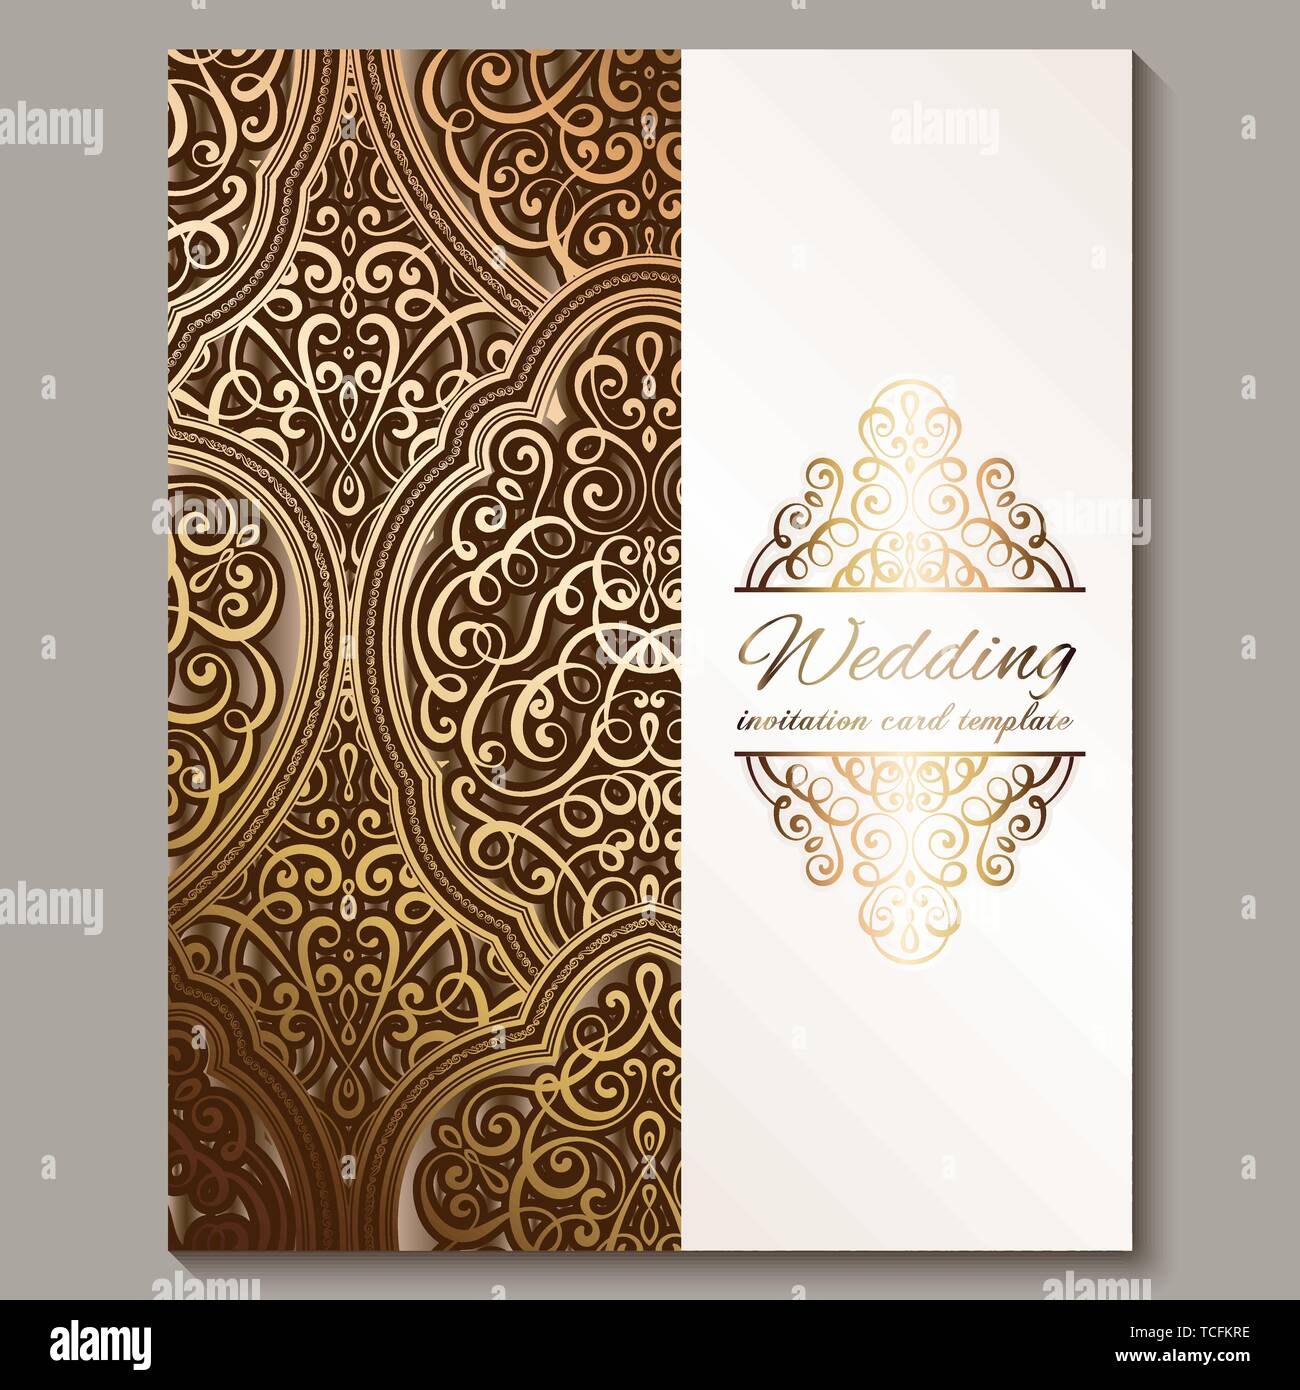 Wedding Invitation Card With Bronze And Gold Shiny Eastern And Baroque Rich Foliage Ornate Islamic Background For Your Design Islam Arabic Indian Stock Vector Image Art Alamy